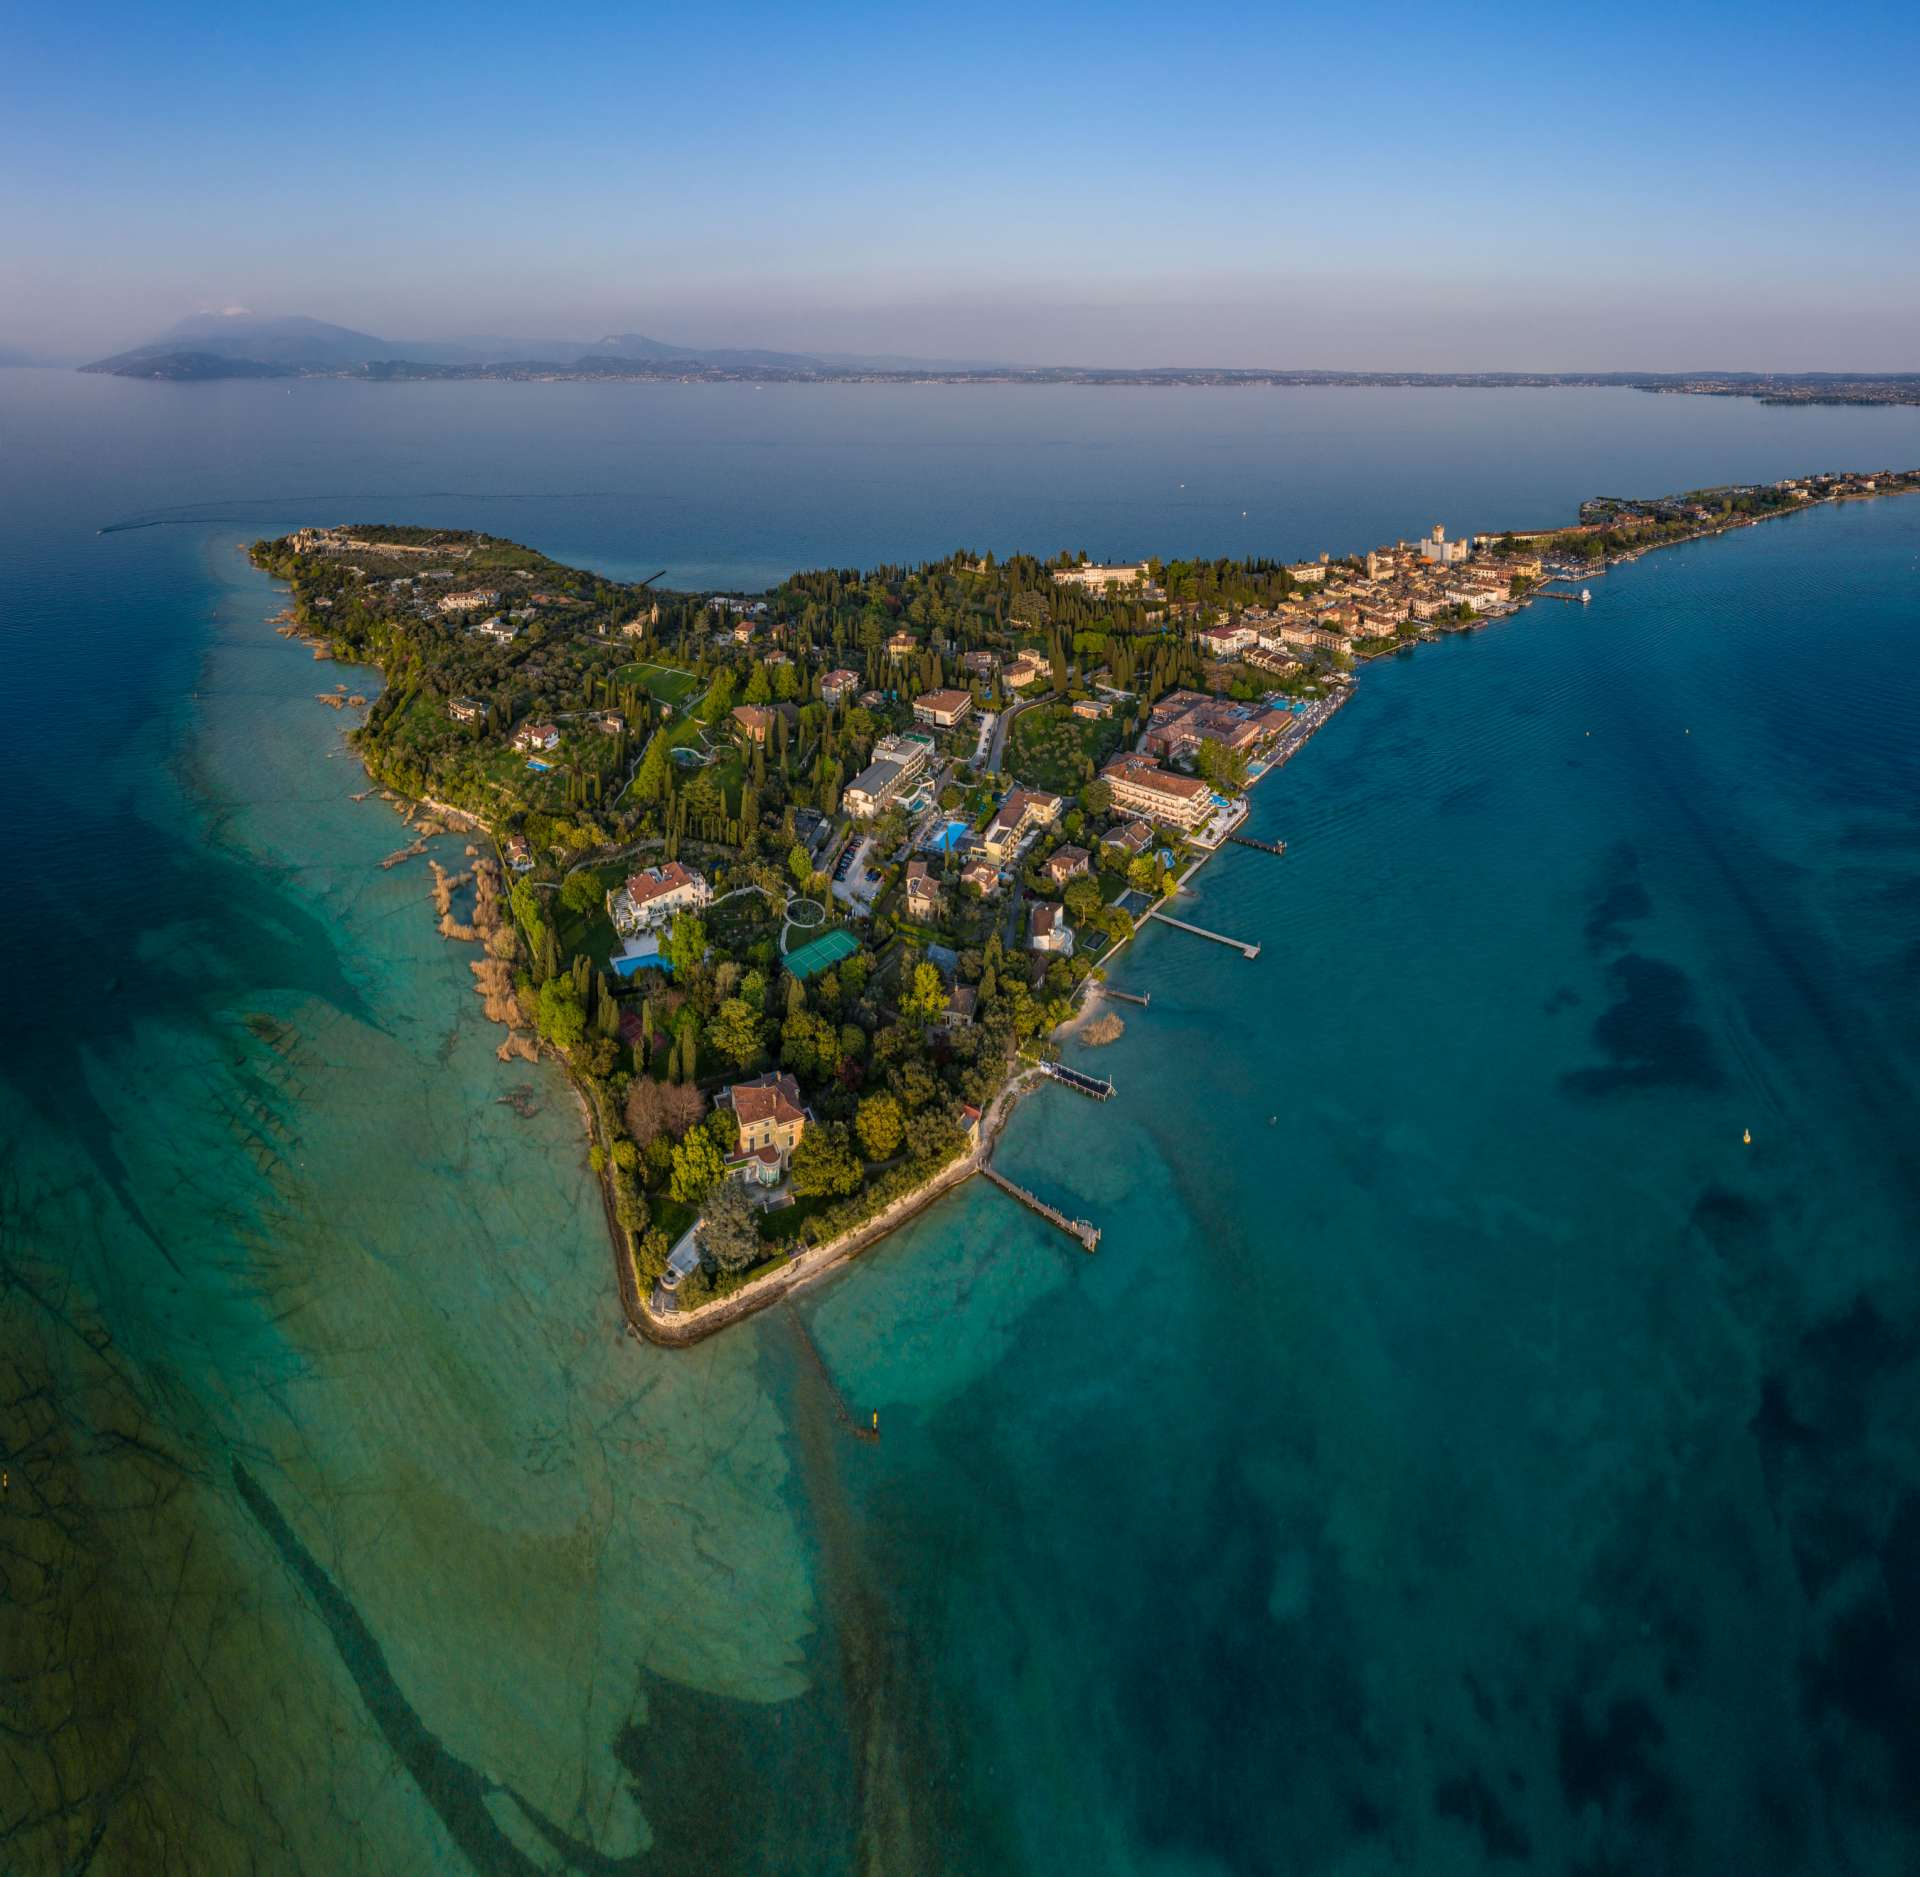 Grotto of Catullus Sirmione Lake of Garda Aerial Drone View 1